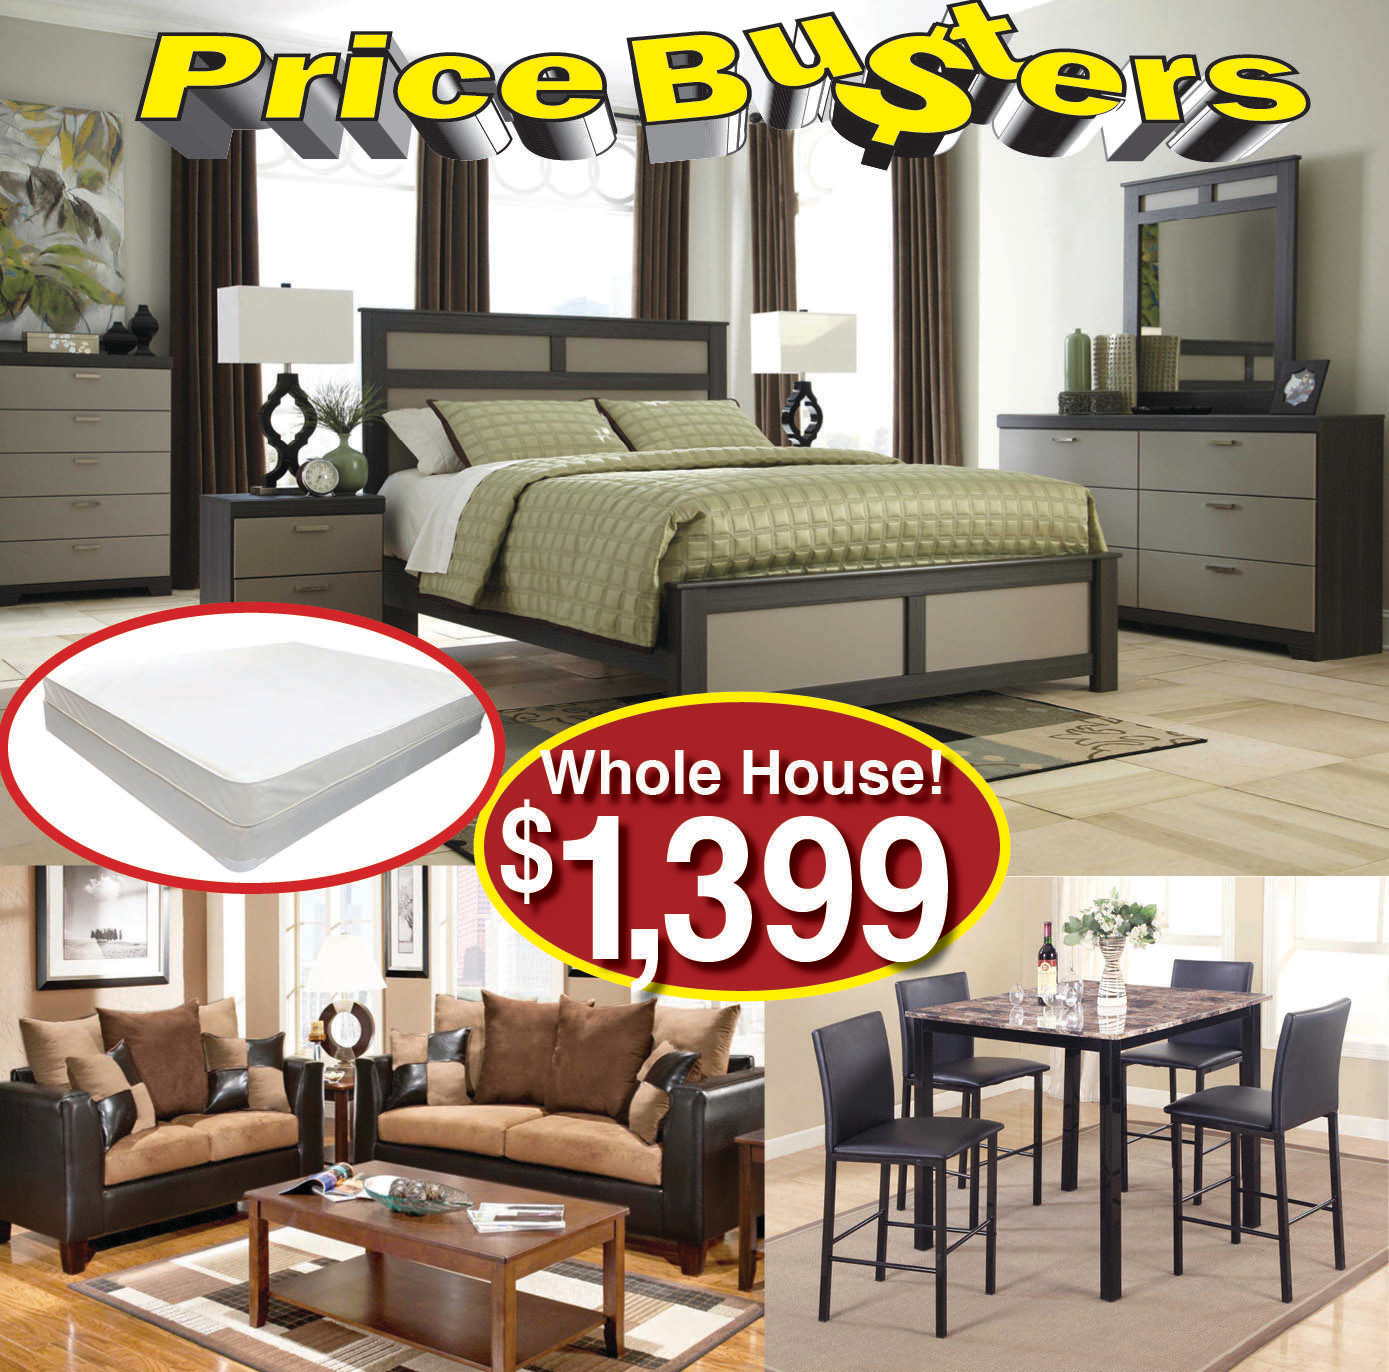 price busters furniture price busters furniture in rosedale md whitepages 526